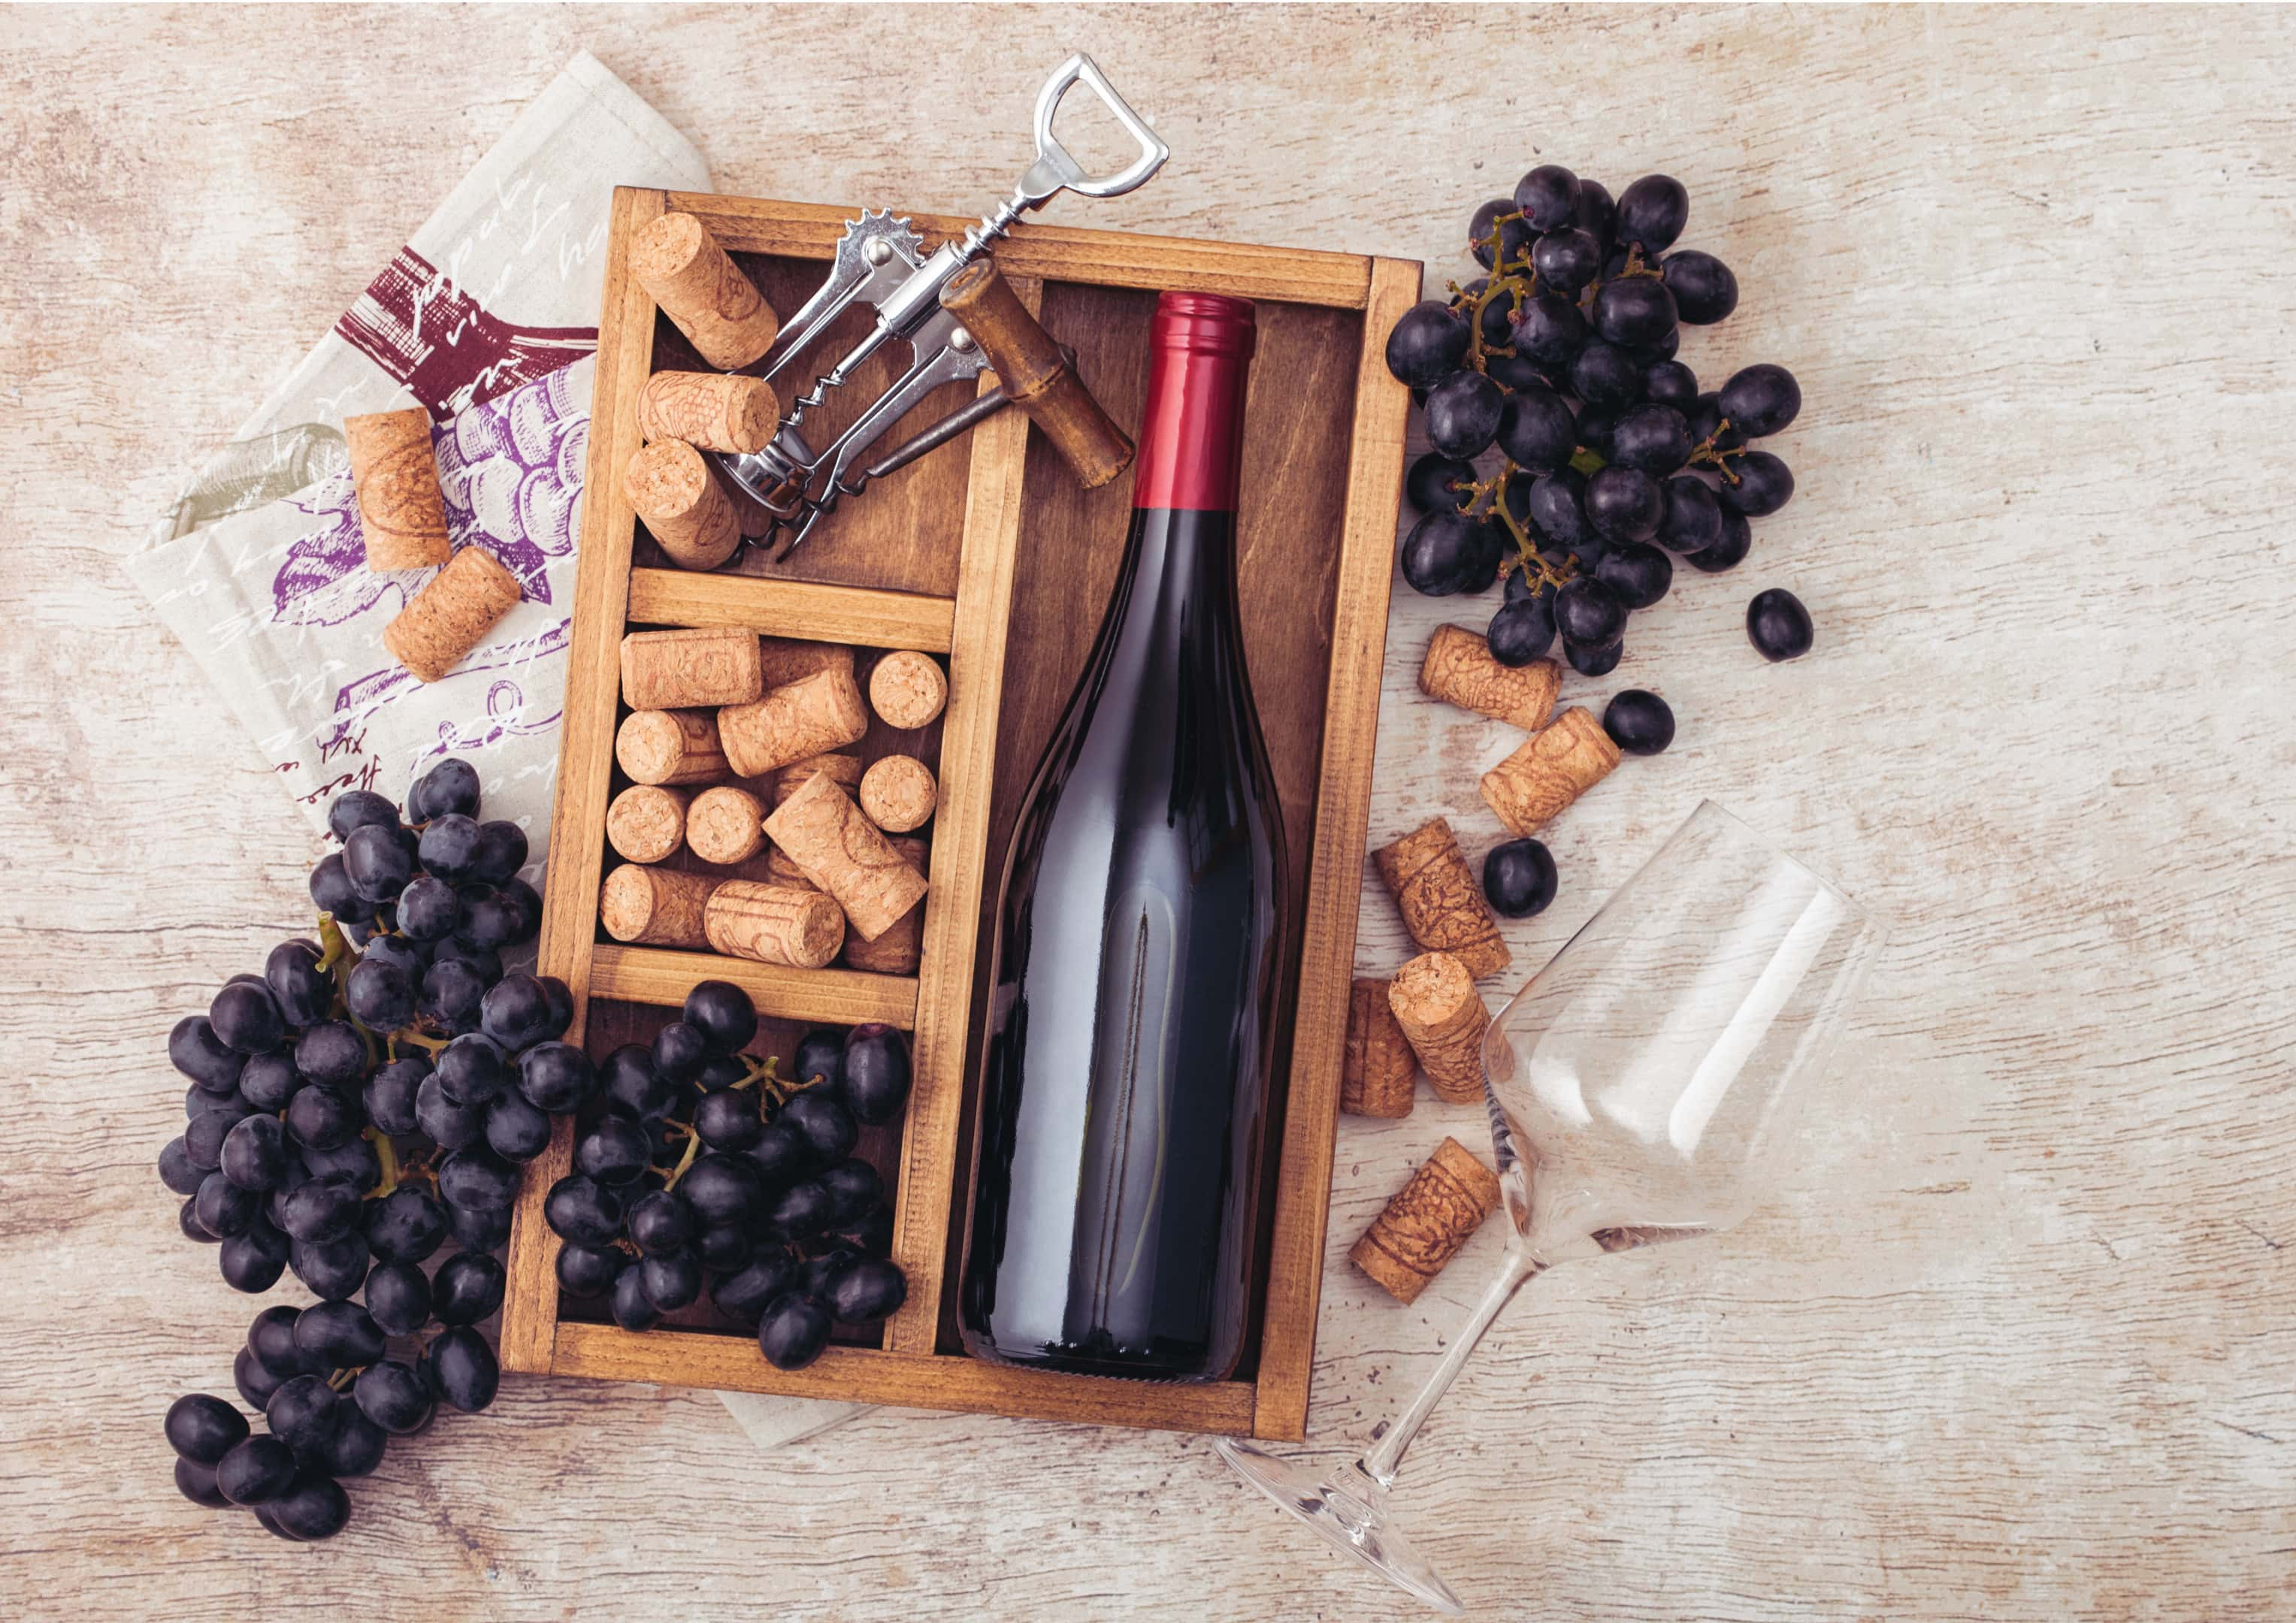 Bottle of red wine with corks and grapes in wooden box